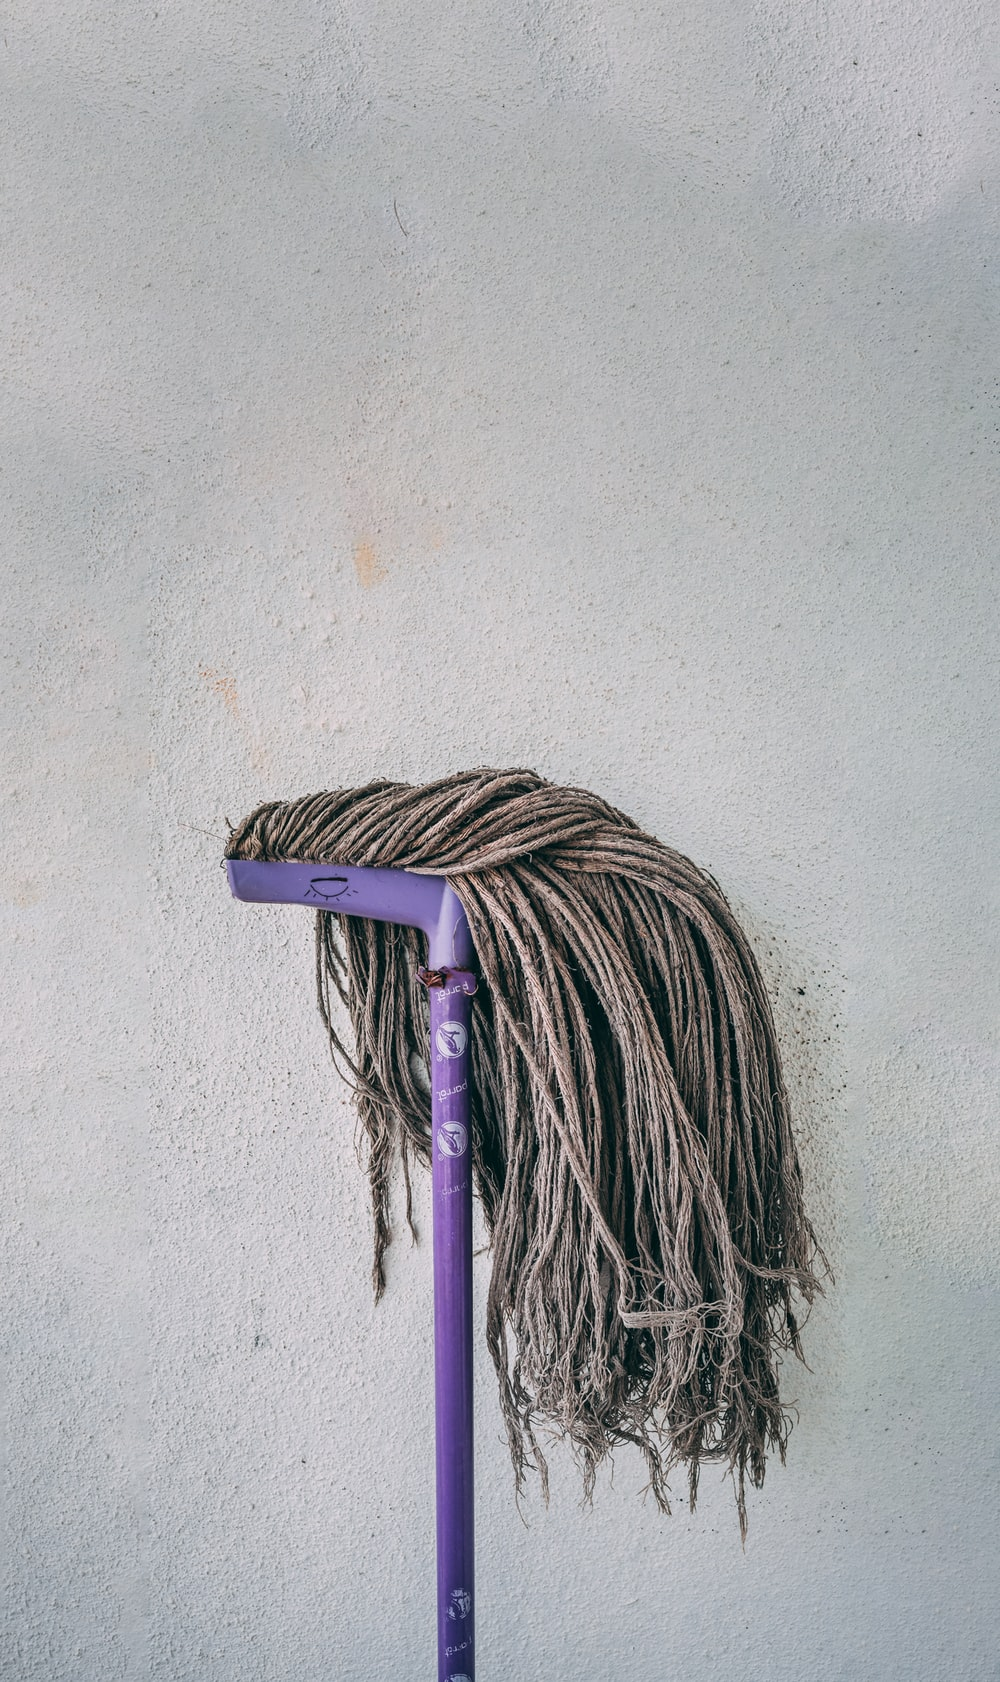 purple and white mop leaning on white wall